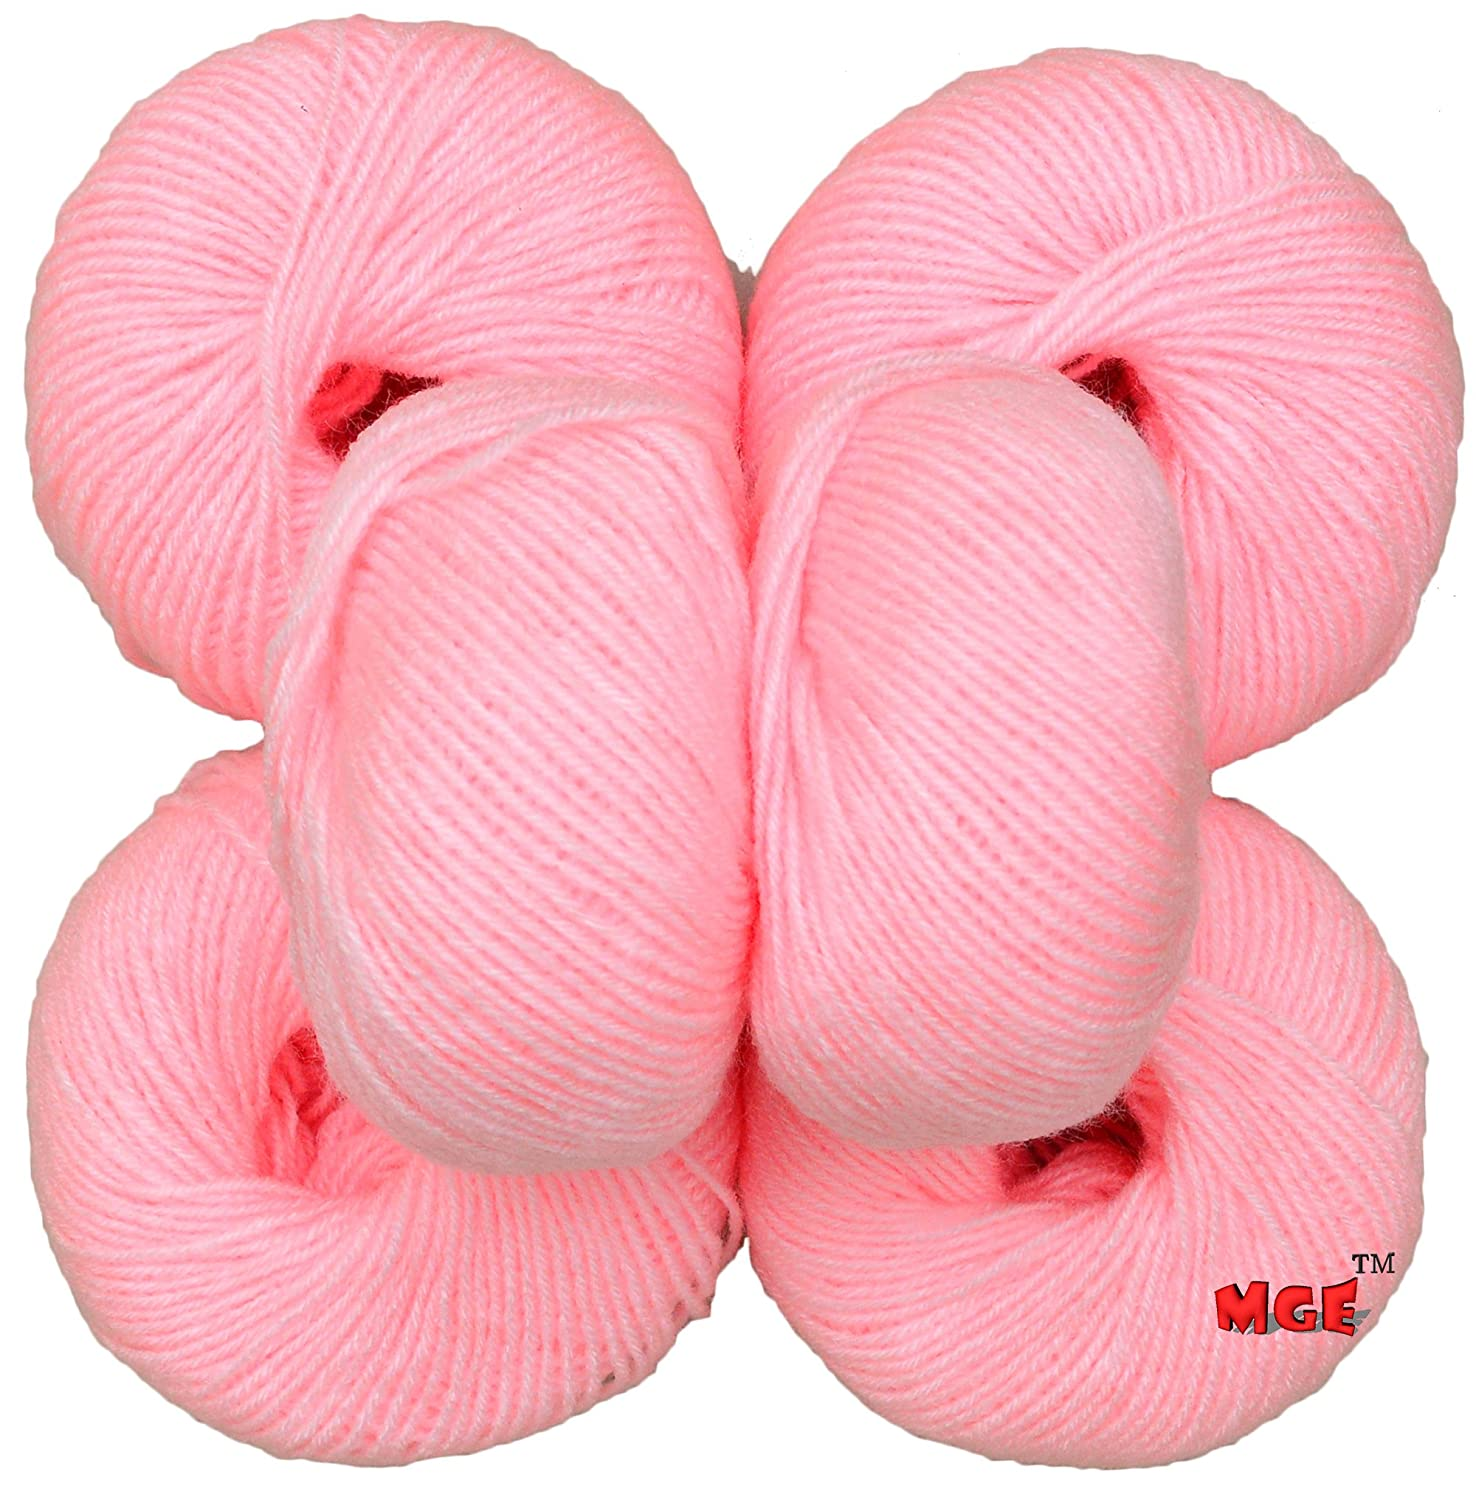 Knitting crochet supplies buy knitting crochet supplies vardhman acrylic knitting wool pack of 6 baby pink magicingreecefo Image collections